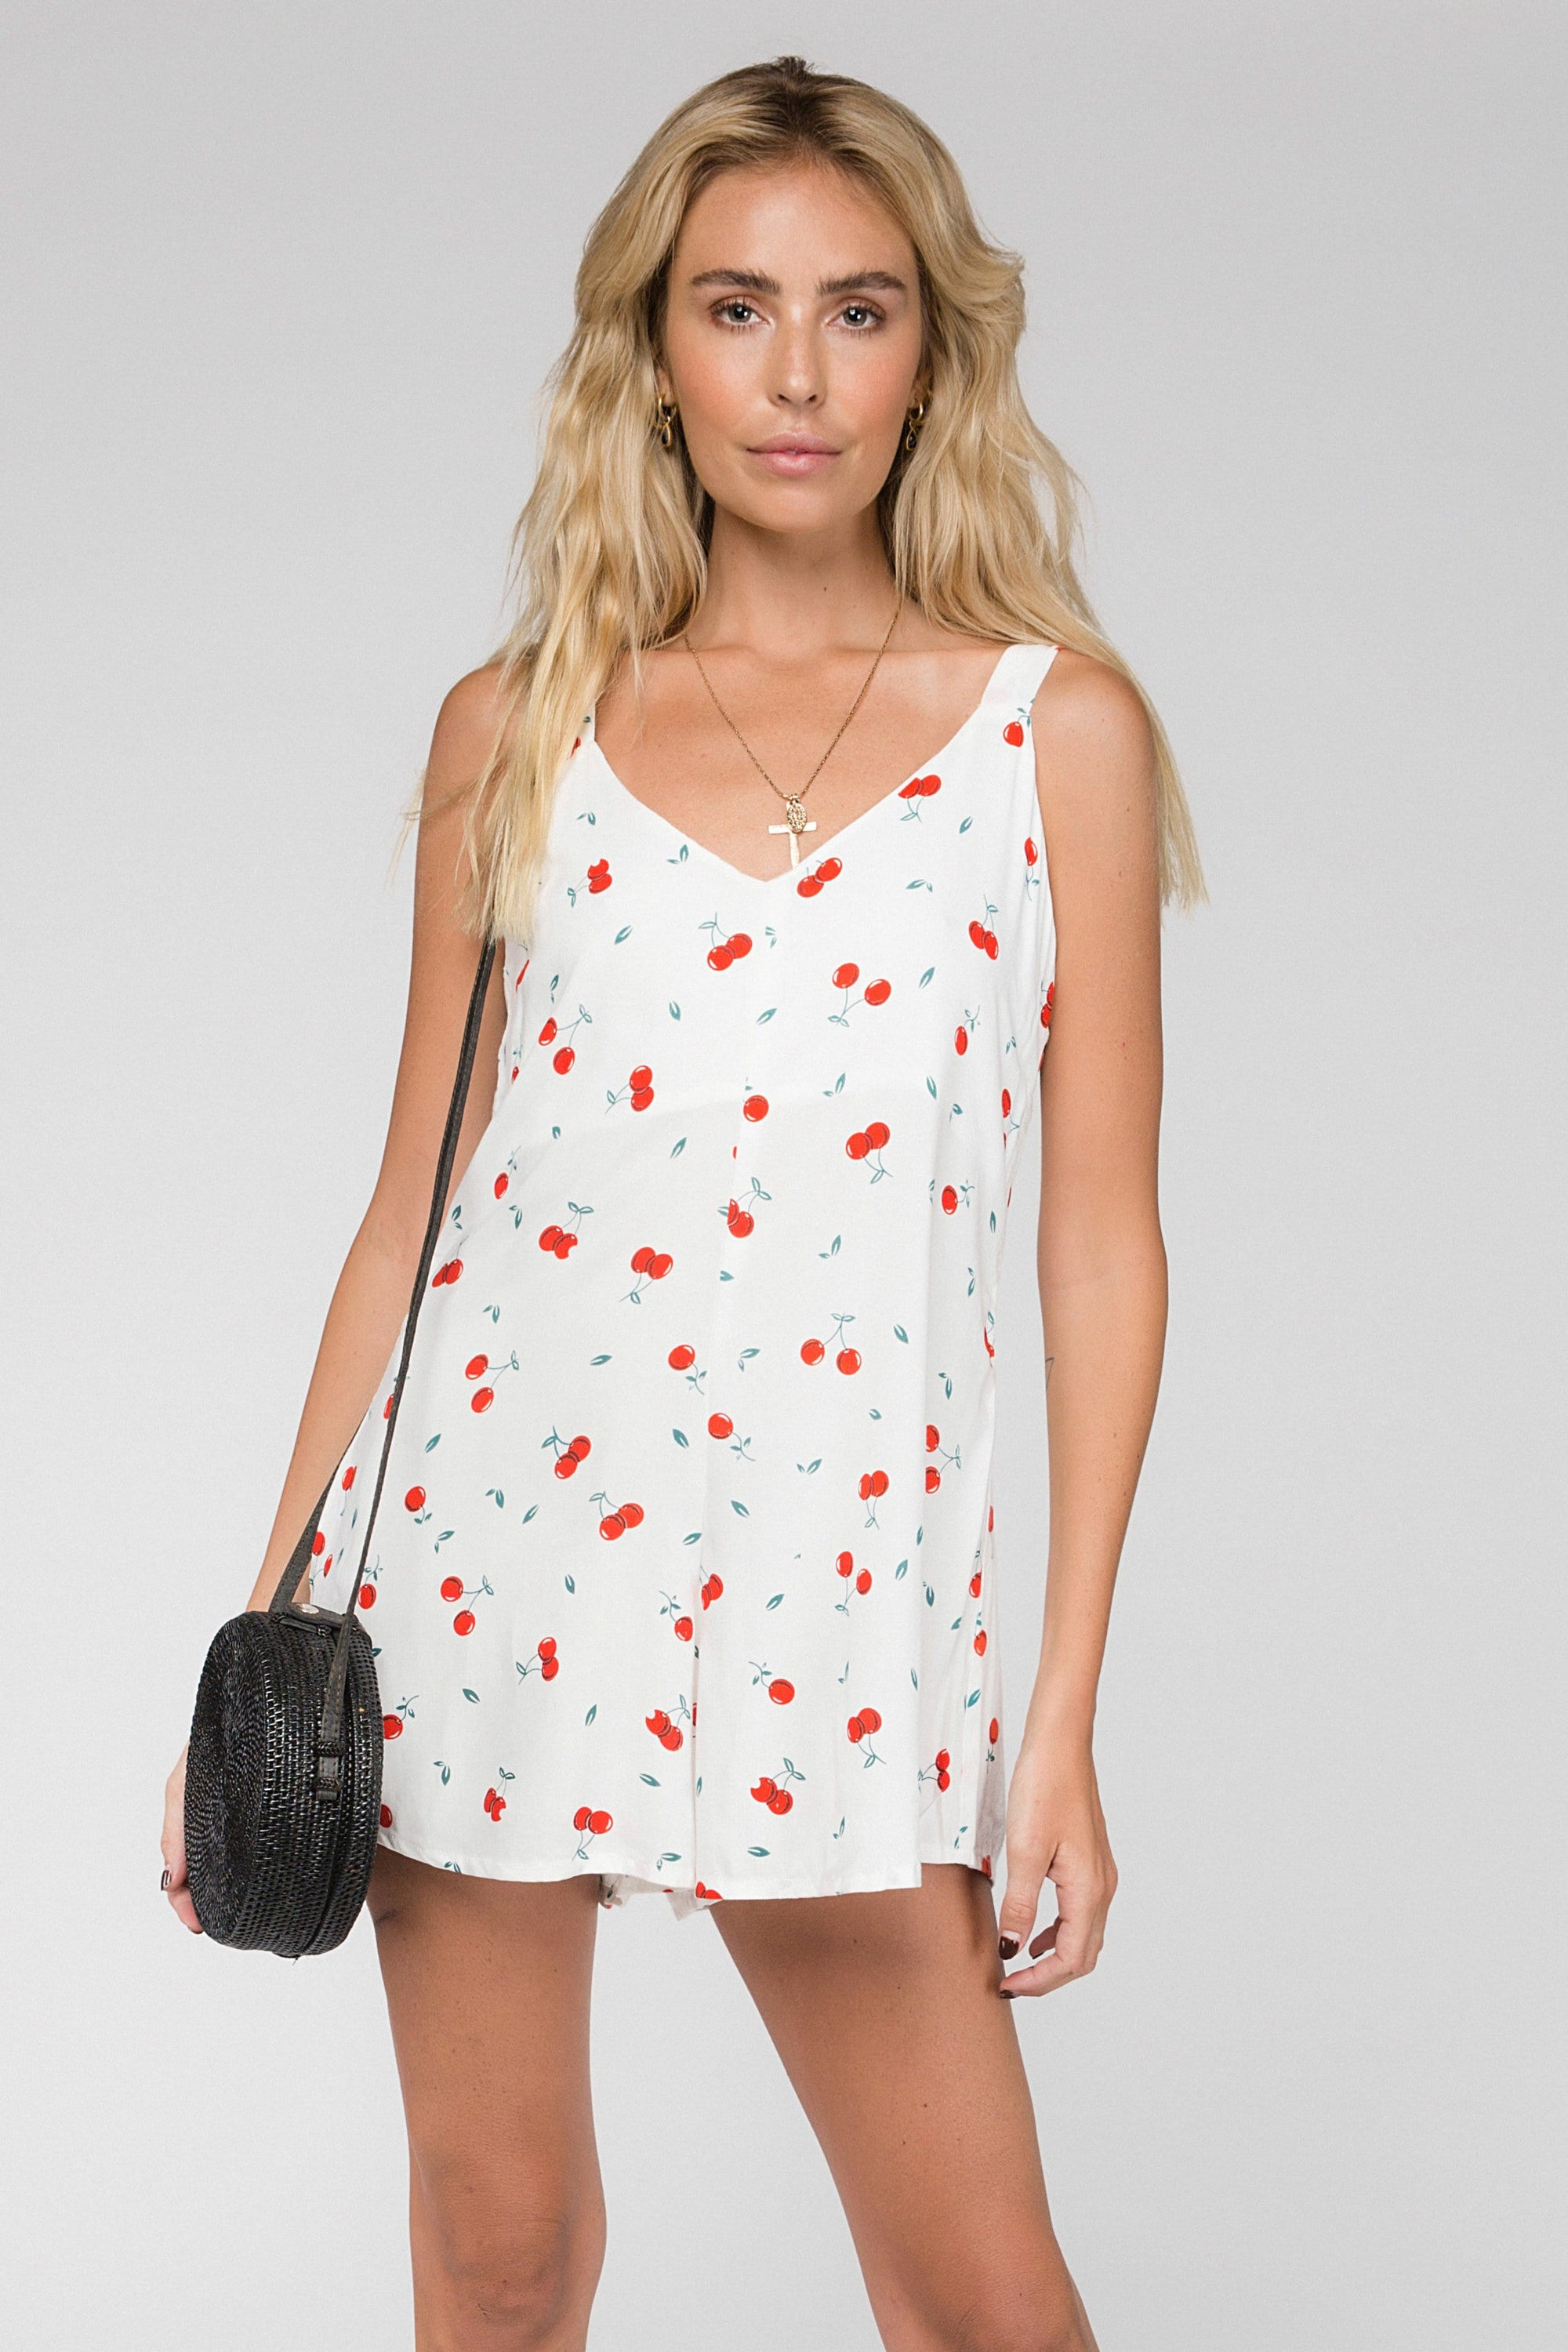 Nath Playsuit - Jumpsuit - LOST IN PARADISE